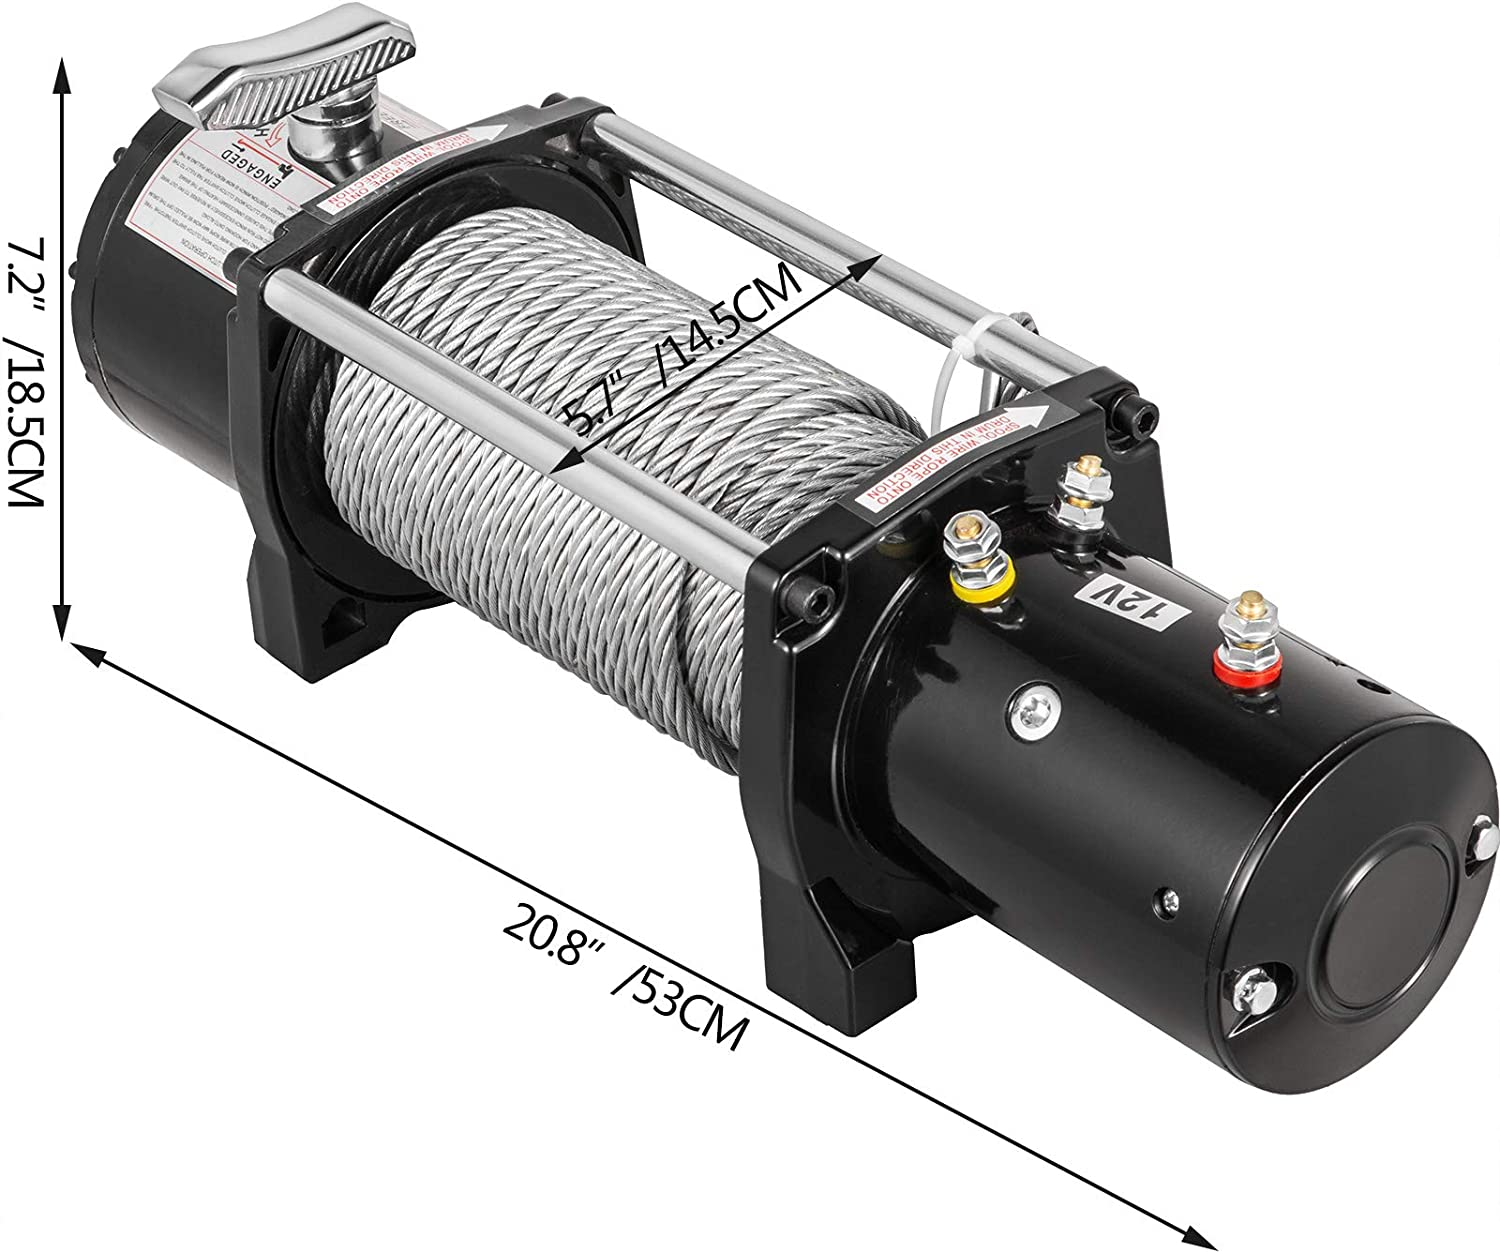 VEVOR Truck Winch 8000Ibs Electric Winch 94ft//28.6m Cable Steel 12V Power Winch Jeep Winch with Wireless Remote Control and Powerful Motor for UTV ATV /& Jeep Truck and Wrangler in Car Lift